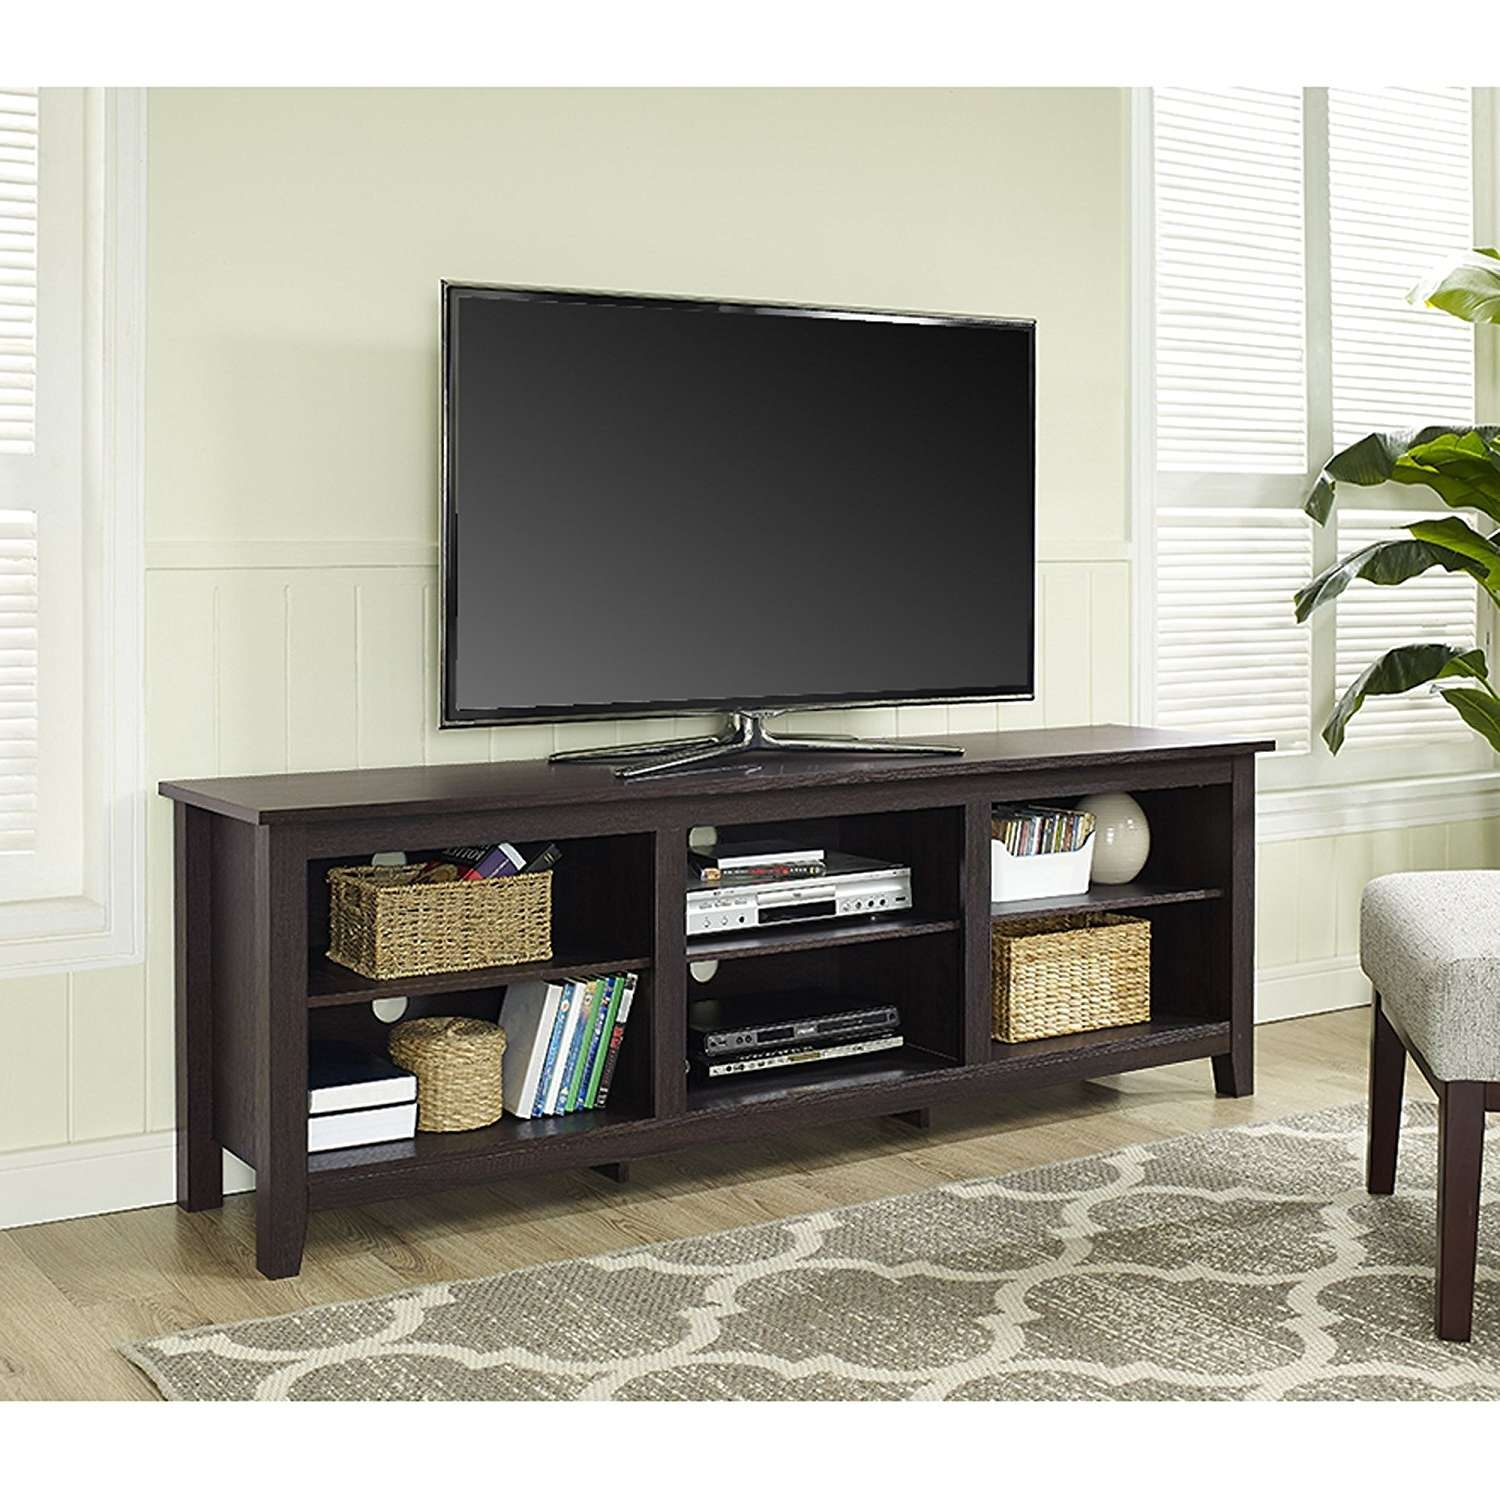 Console Tables : Cool Skinny Console Table With Storage About Regarding Long Tv Cabinets Furniture (View 5 of 20)